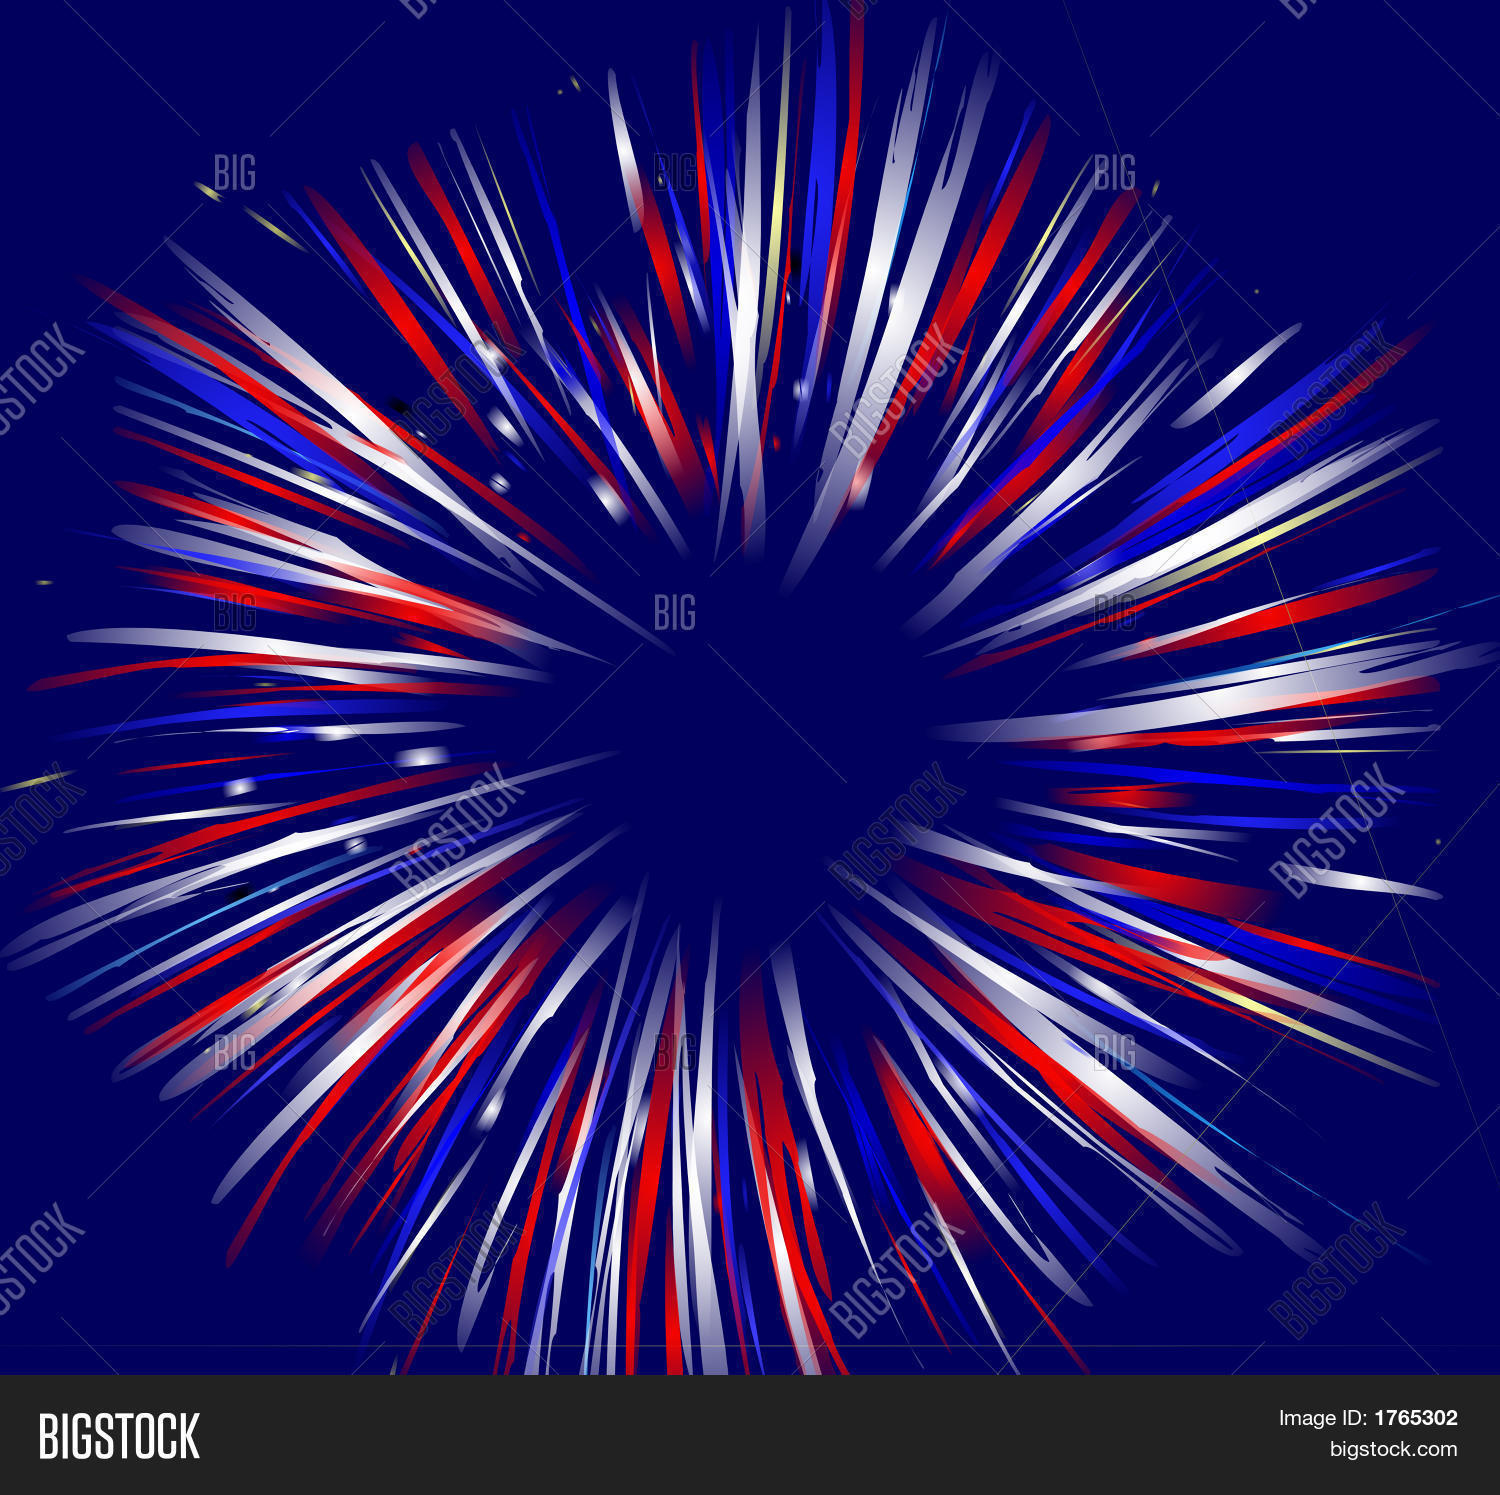 Red white and blue fireworks background for Red white and blue wallpaper